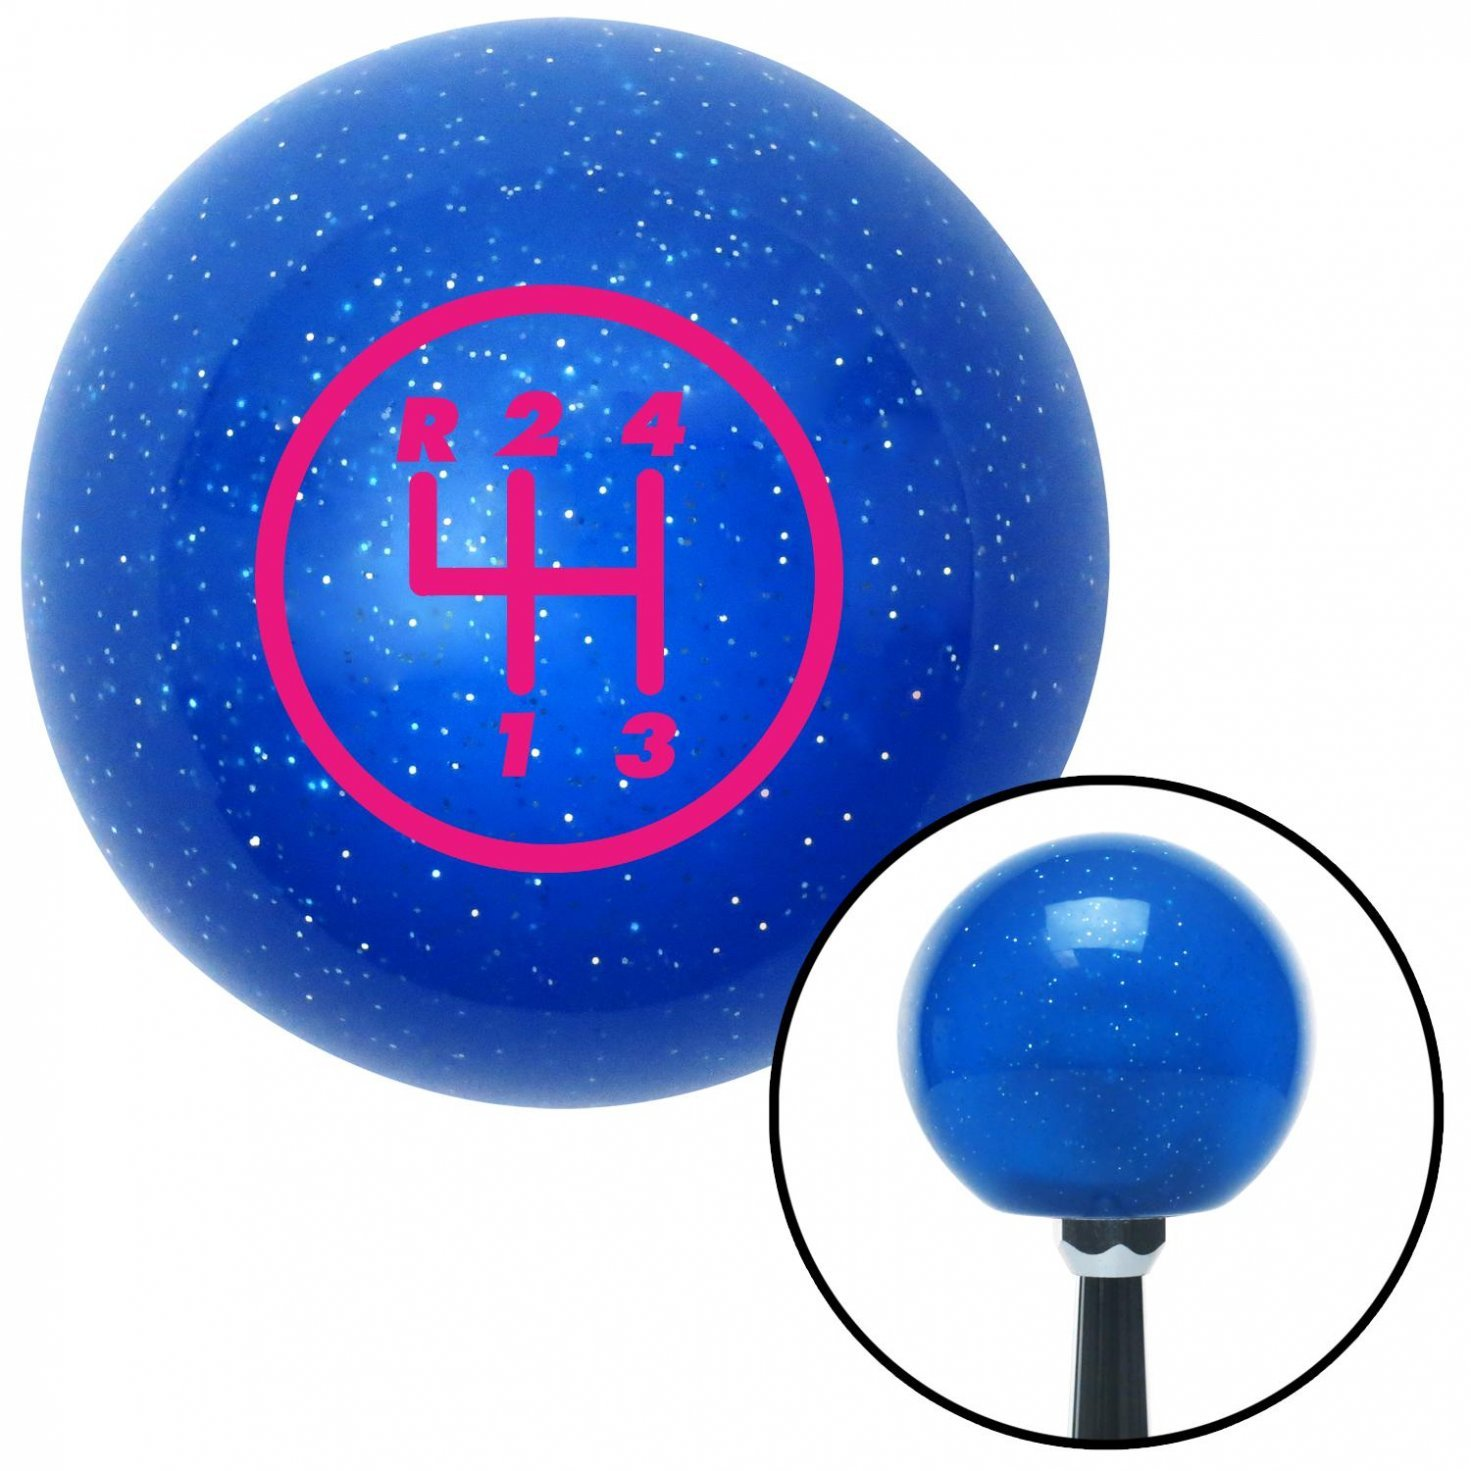 American Shifter 20346 Blue Metal Flake Shift Knob with 16mm x 1.5 Insert Pink 4 Speed Shift Pattern - 4RUL